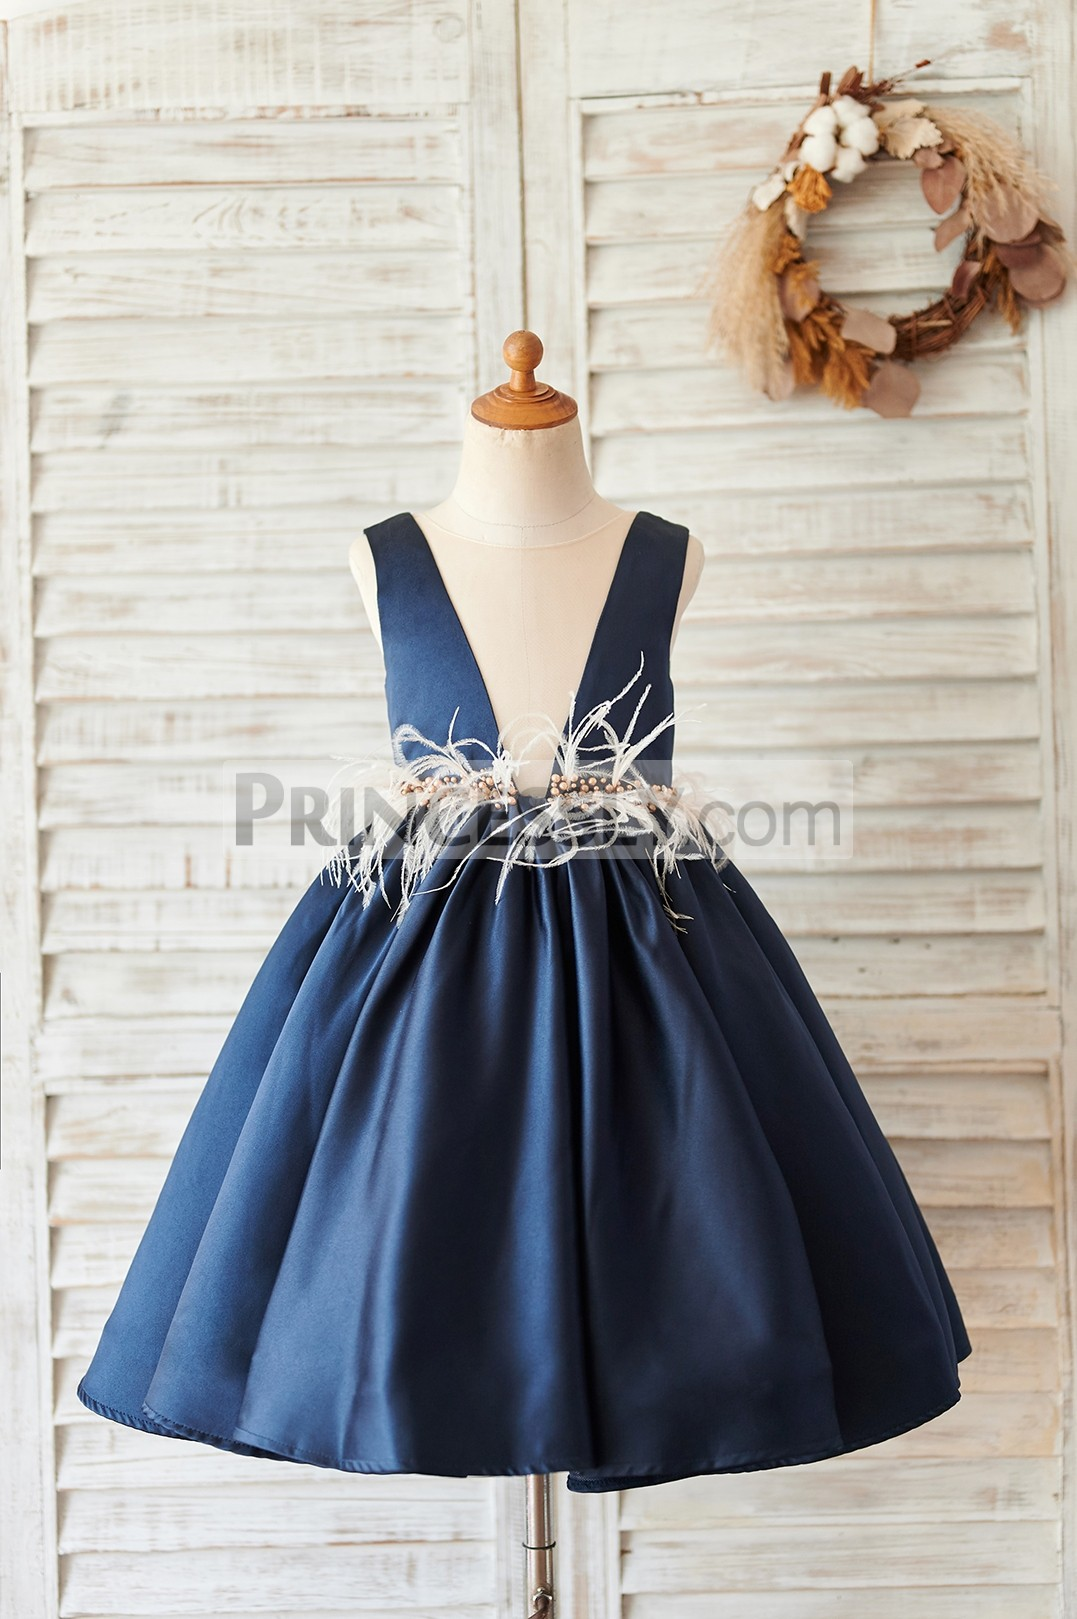 Princessly.com-K1004059-Navy Blue Satin V Neck Wedding Party Flower Girl Dress-31